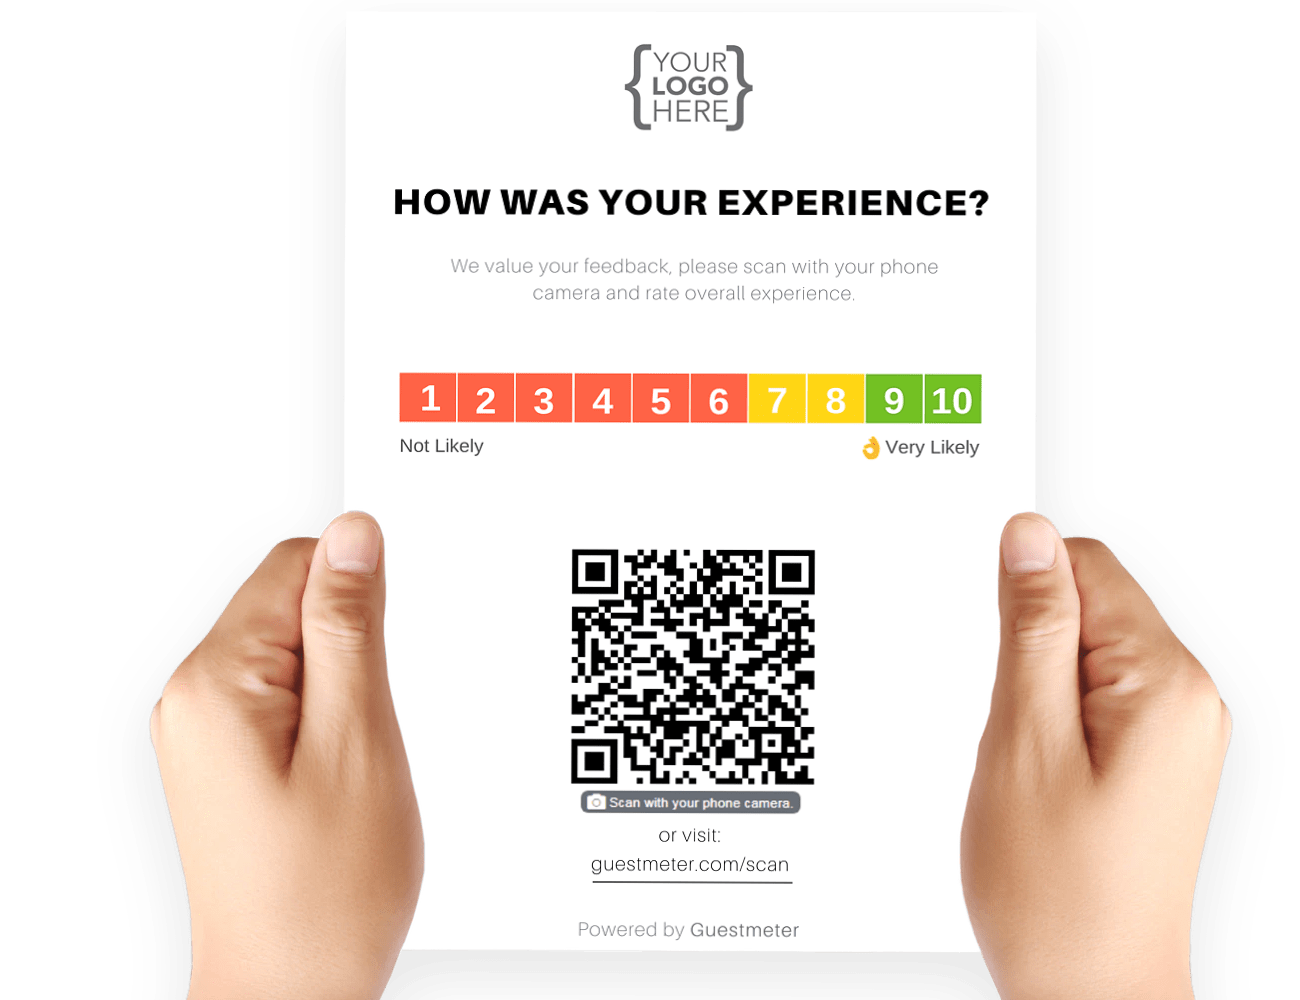 Tours & Attractions Reputation Management - QR Channel